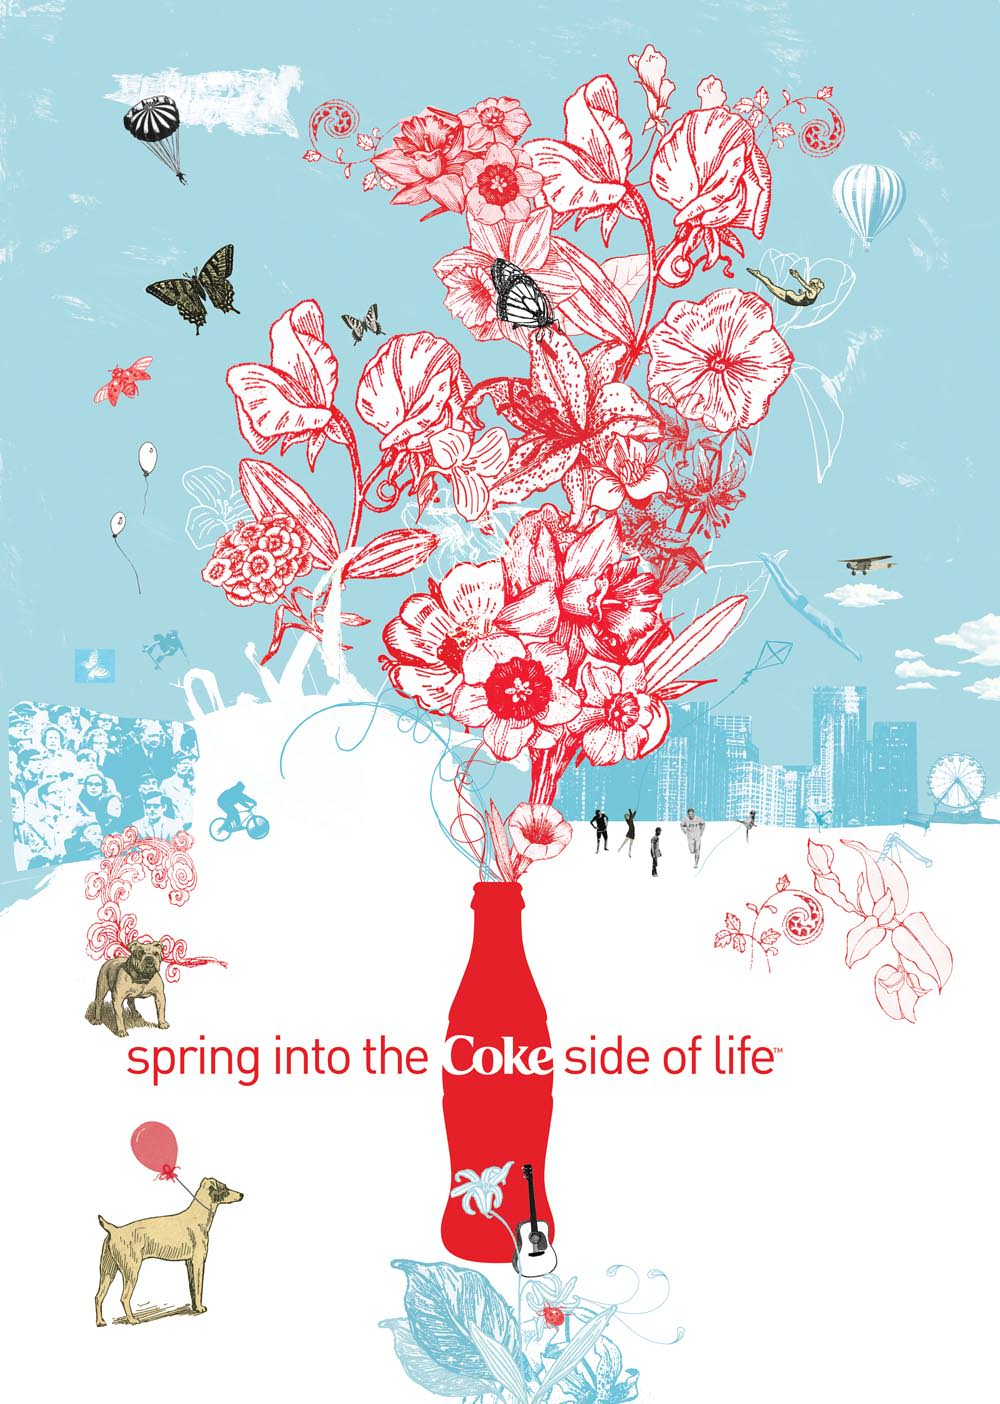 Copy of Coke Side of Life - TH118